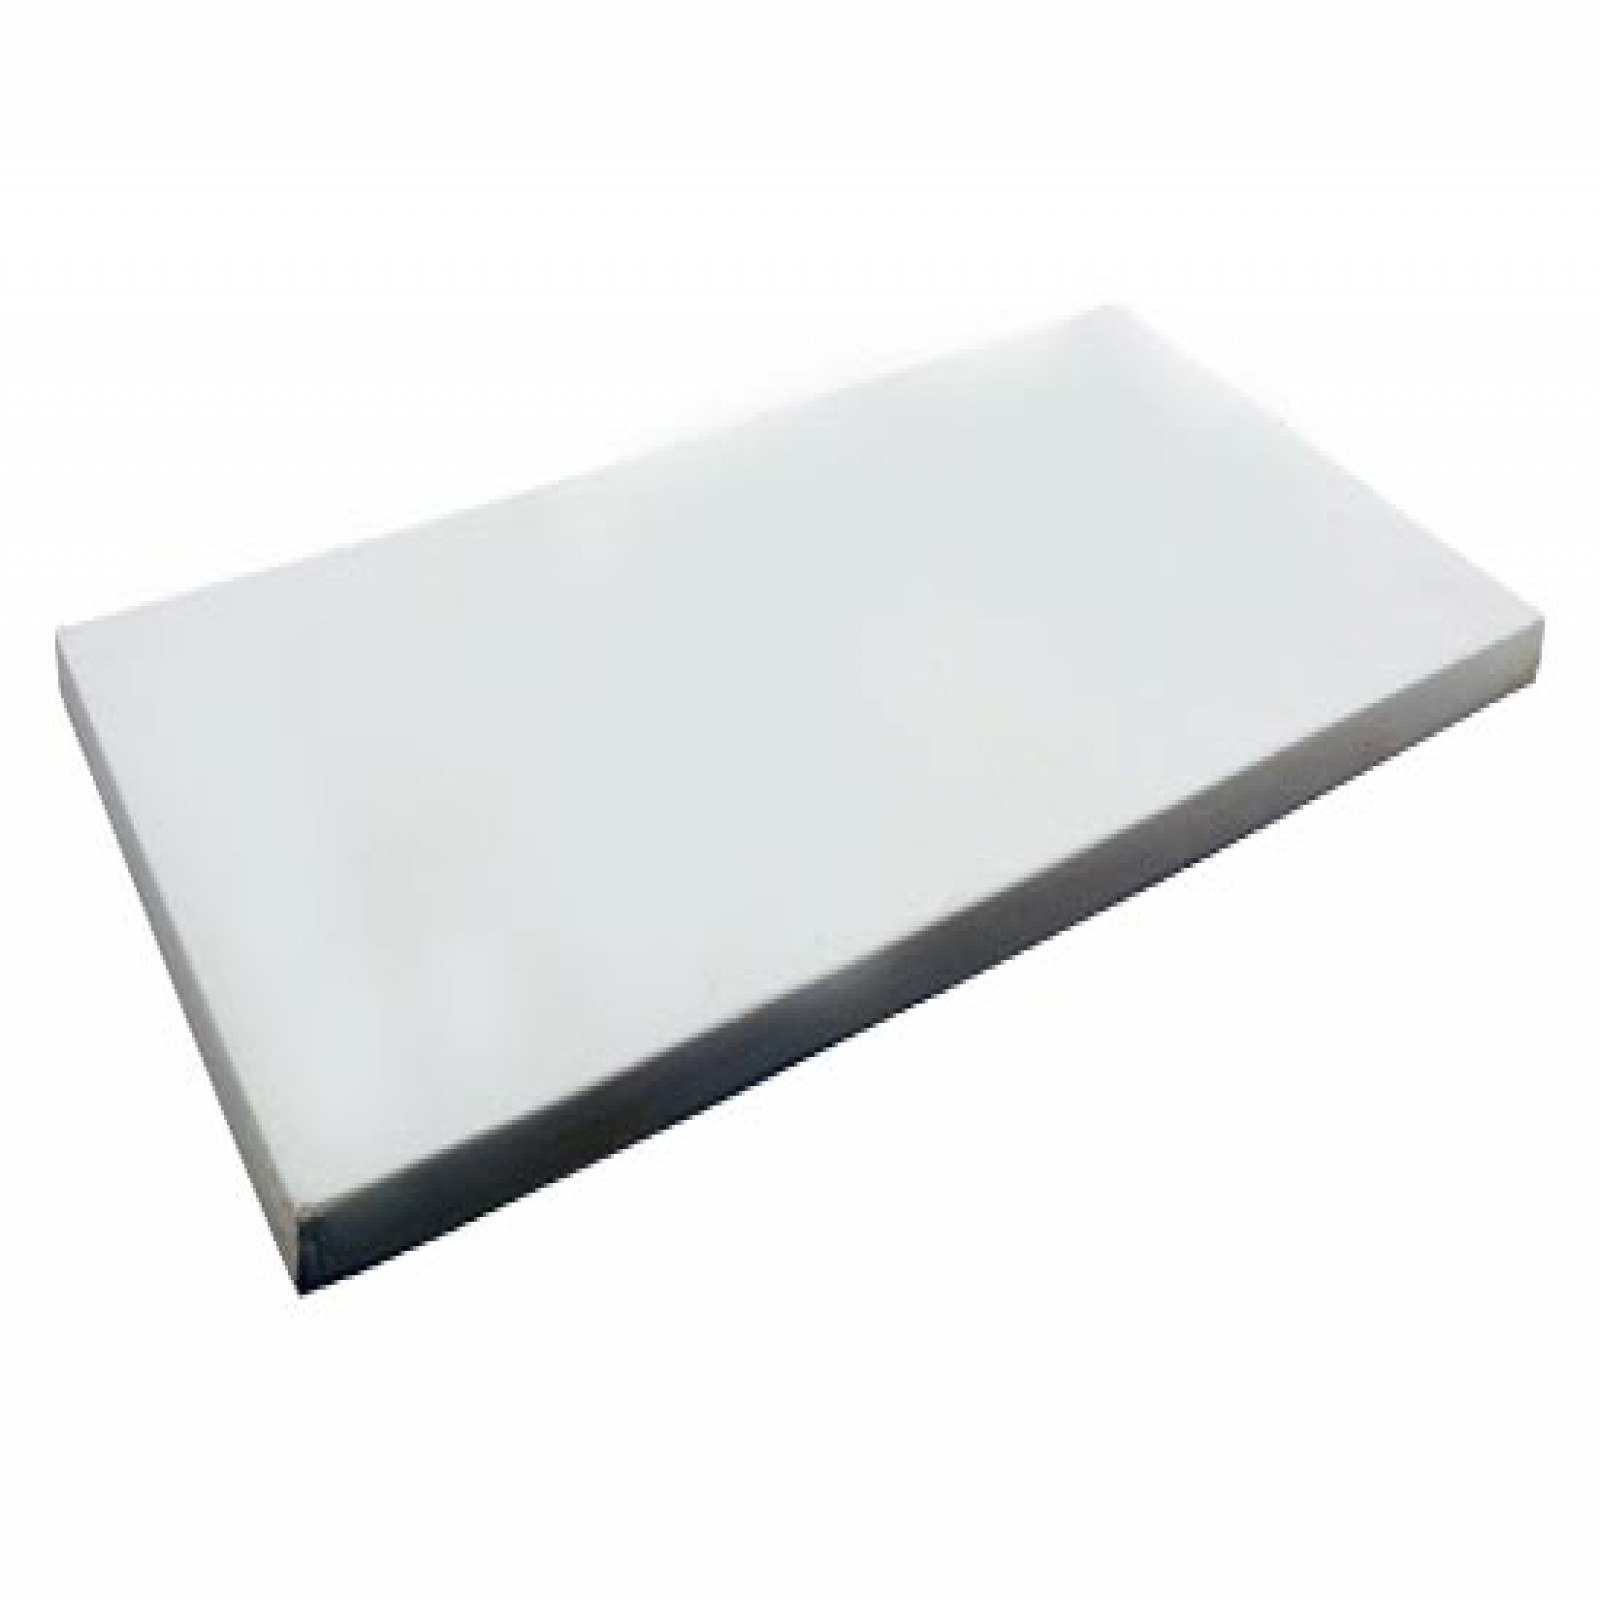 CERAMIC SOLDERING BOARD - 6  X 12  WITH FEET